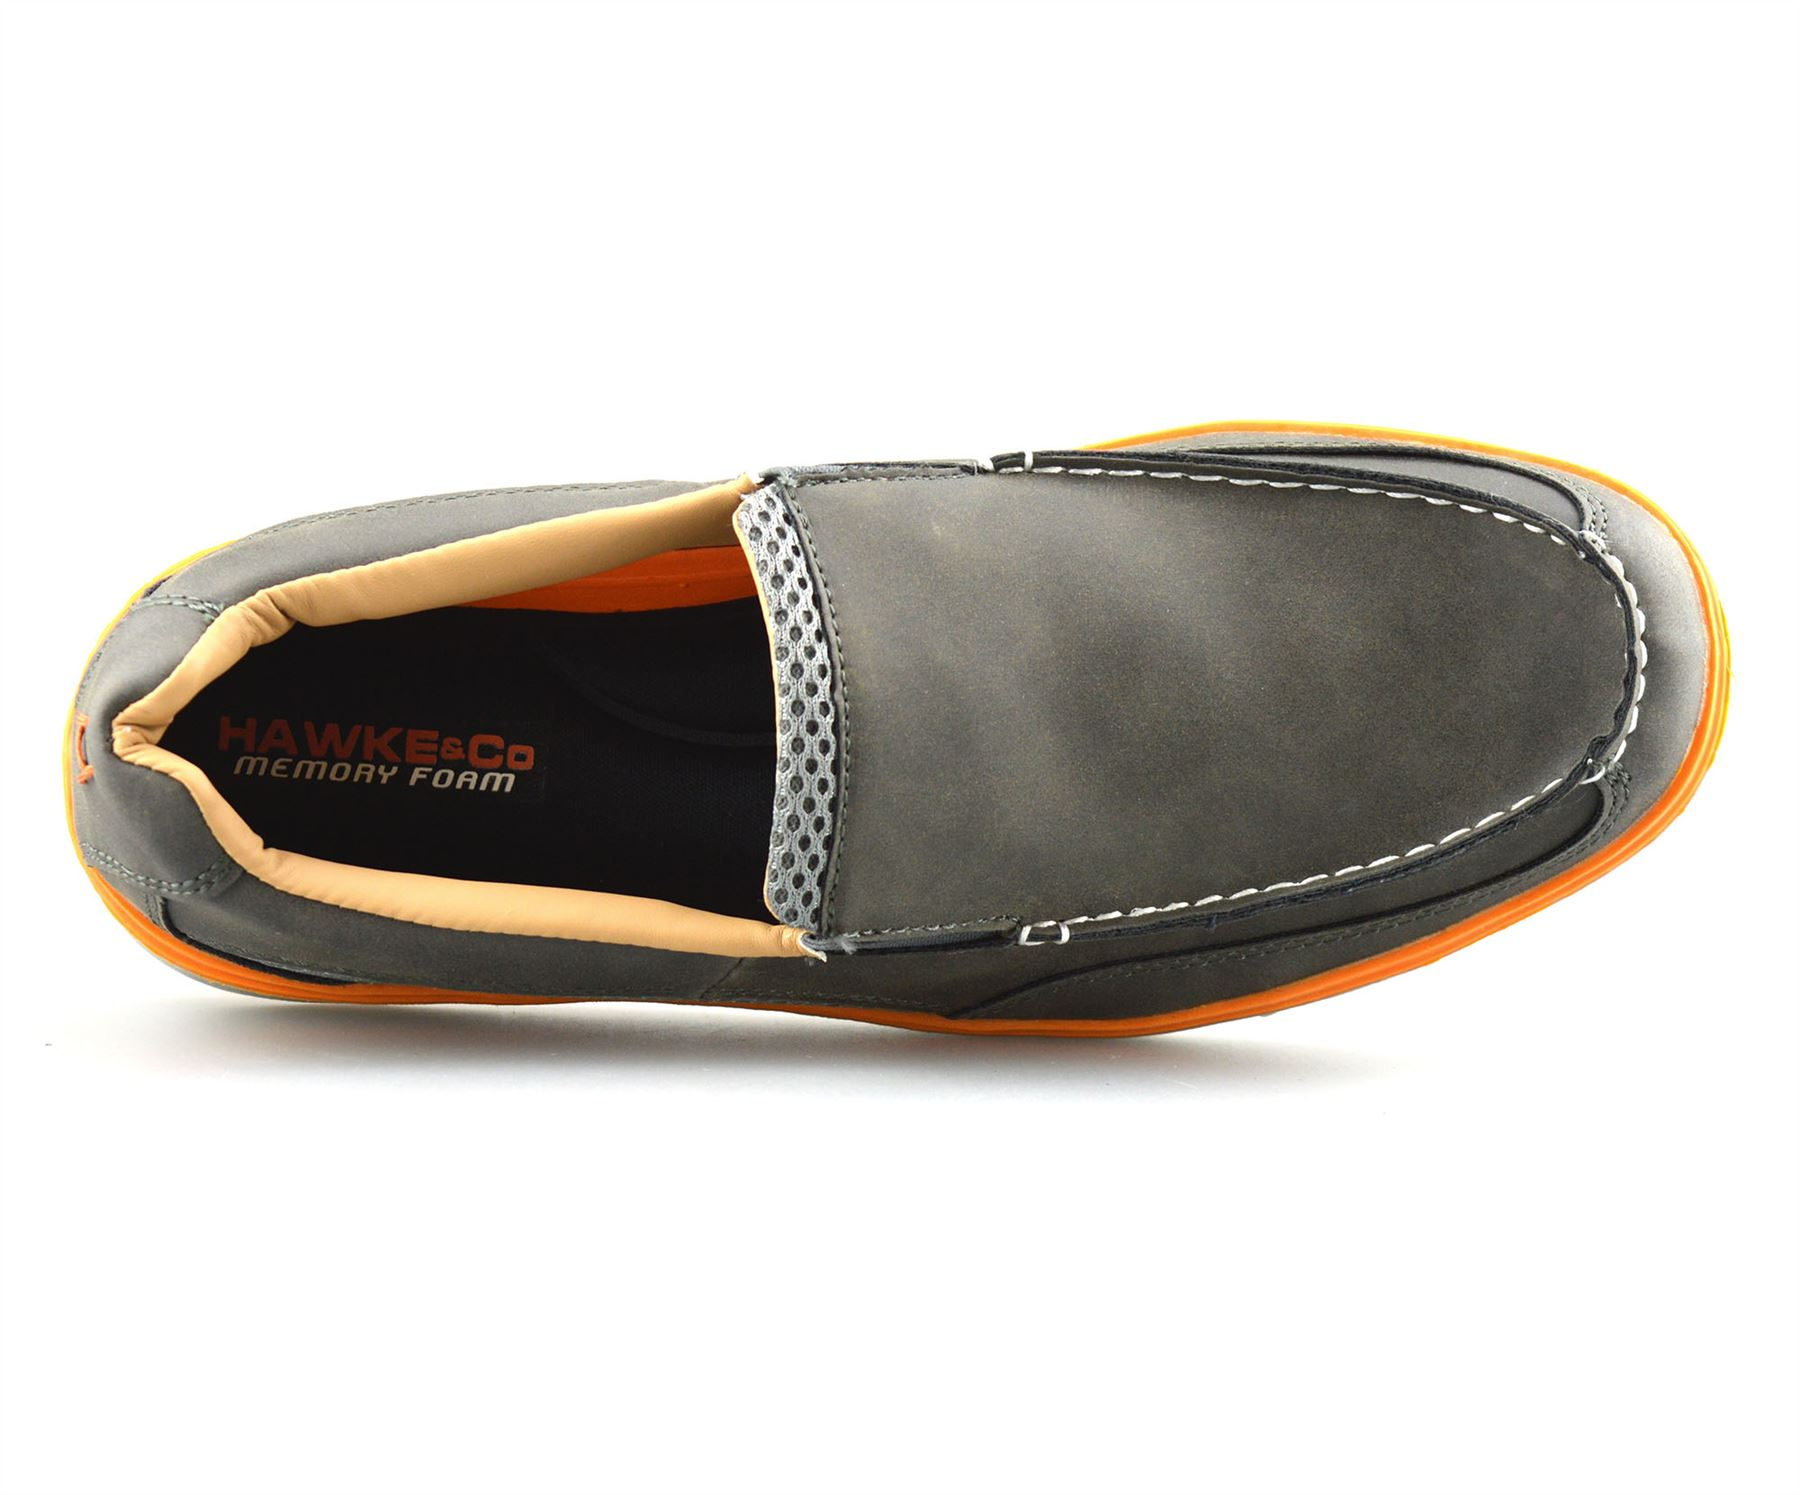 Mens-Casual-Memory-Foam-Slip-On-Walking-Loafers-Moccasin-Driving-Boat-Shoes-Size thumbnail 33